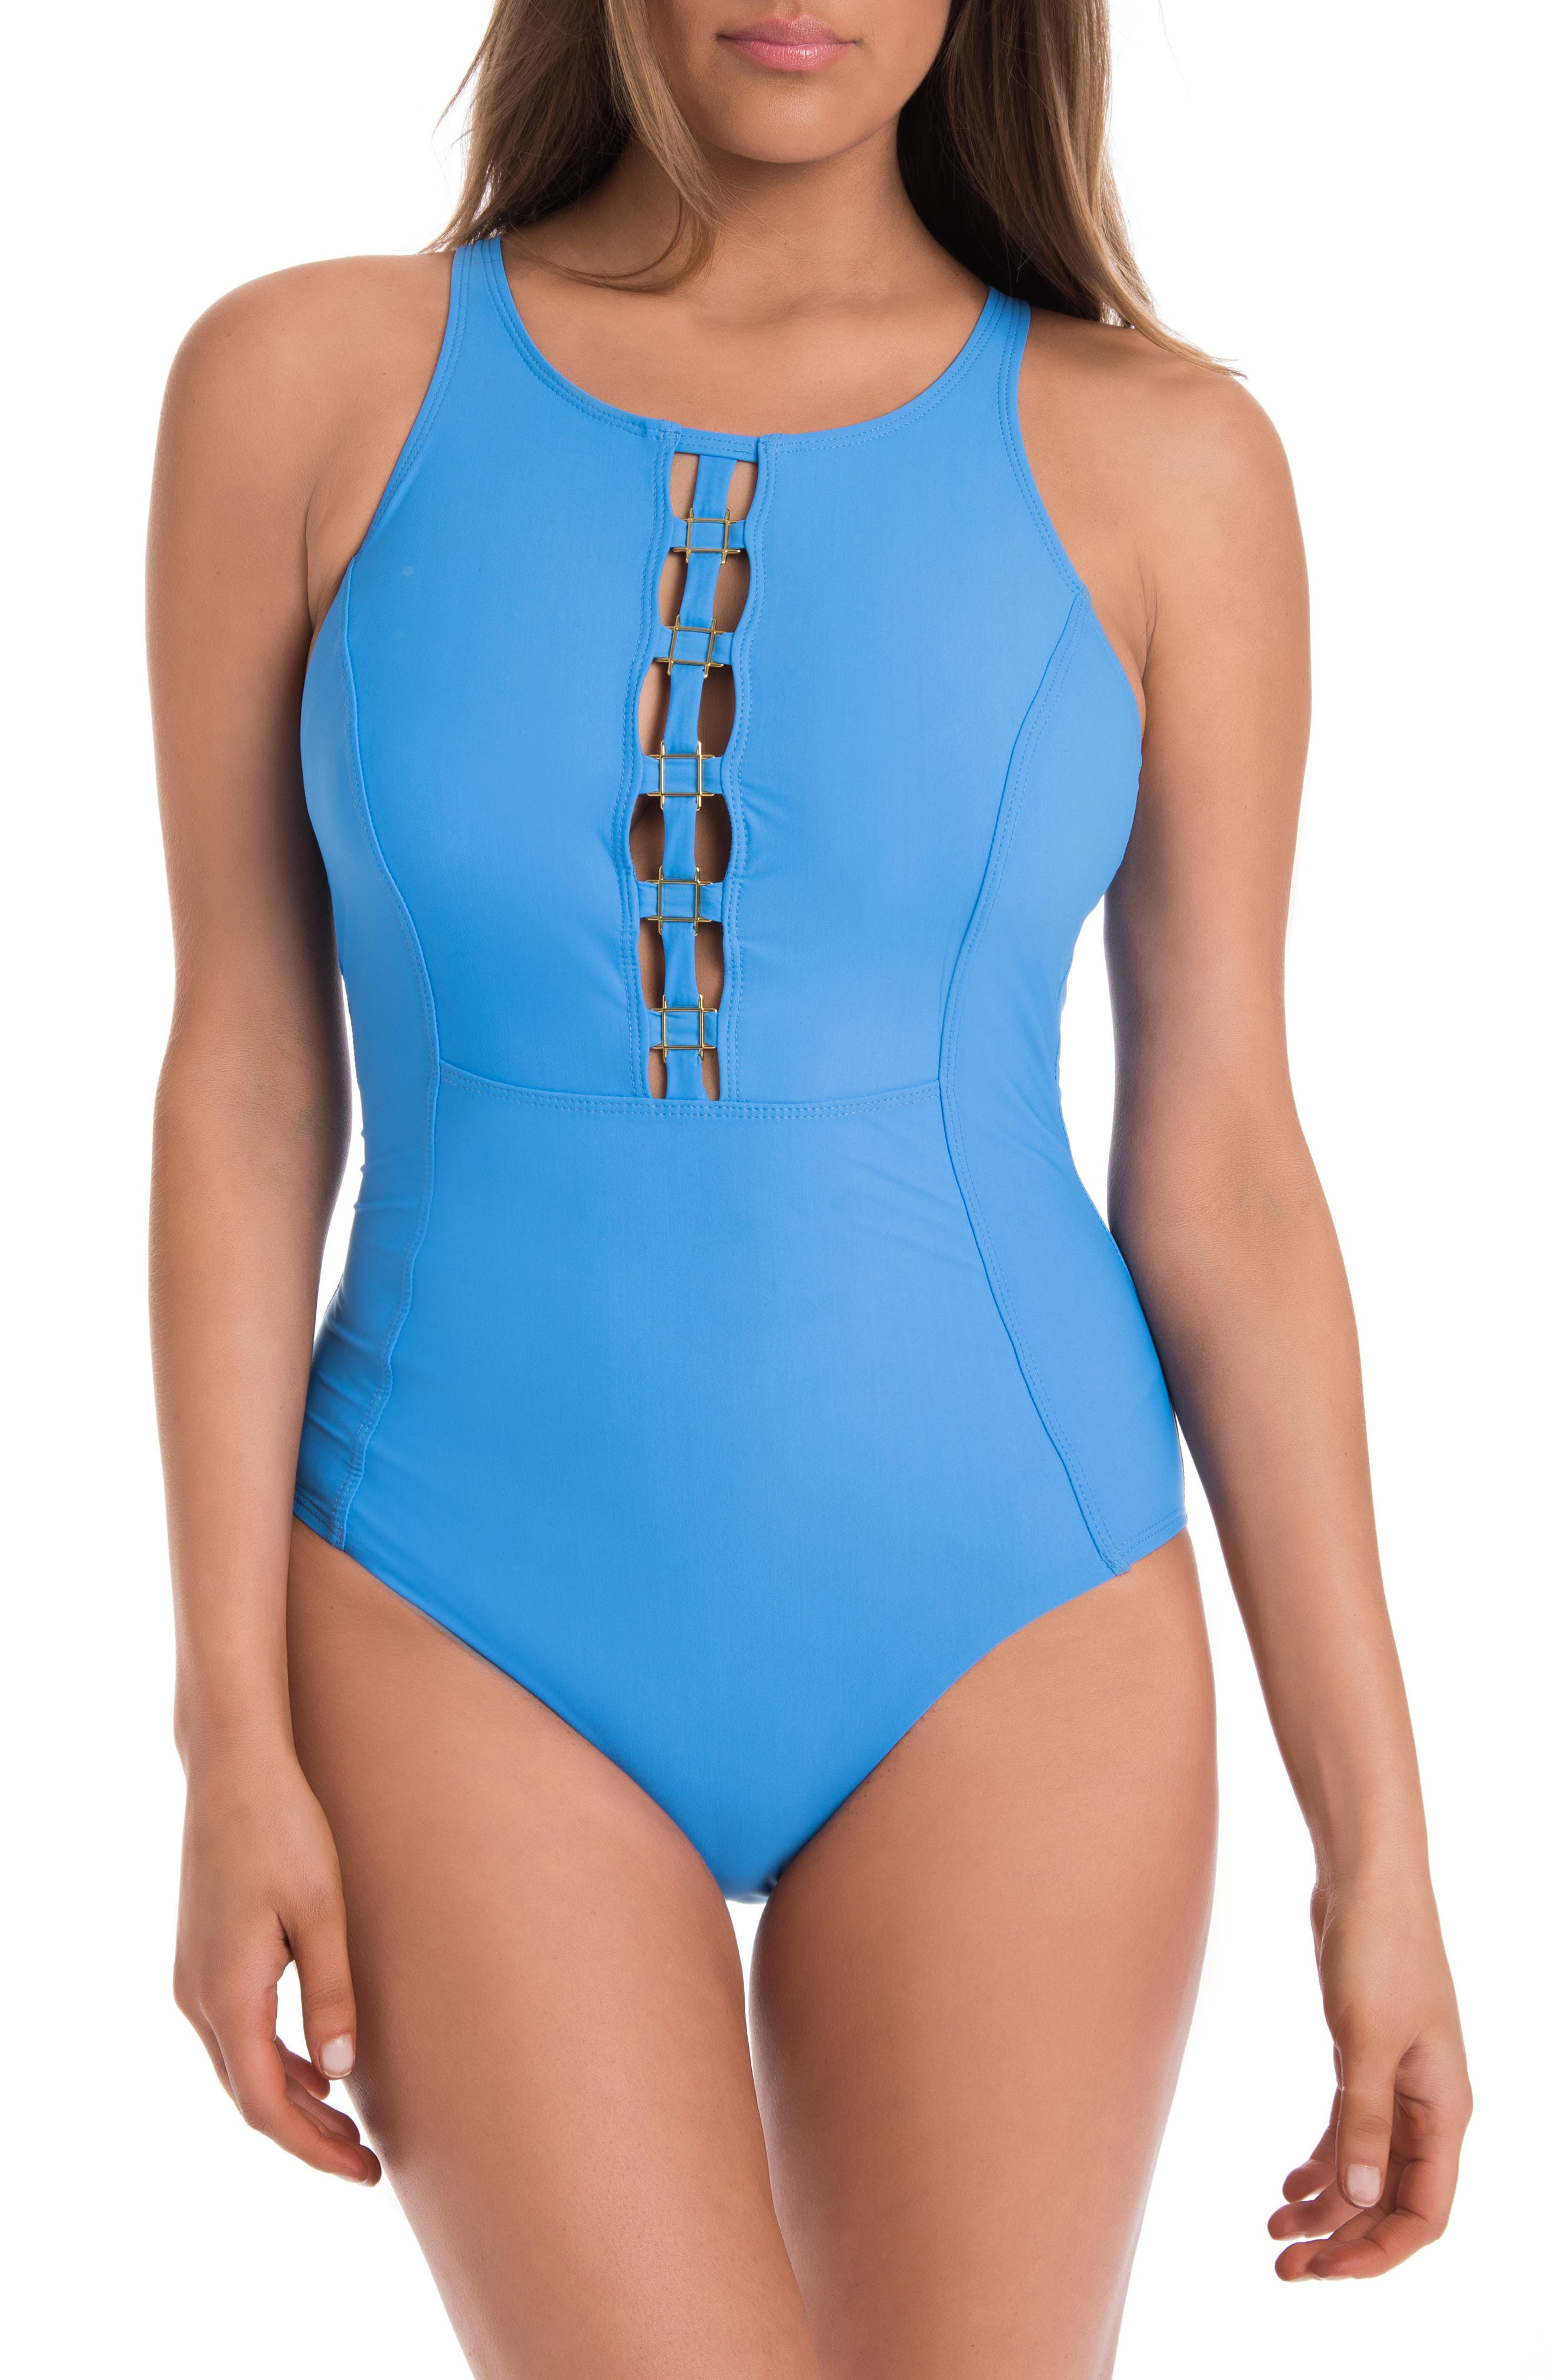 You Only Live Twice Sonder One-Piece Swimsuit,                             Main thumbnail 1, color,                             Pool Blue